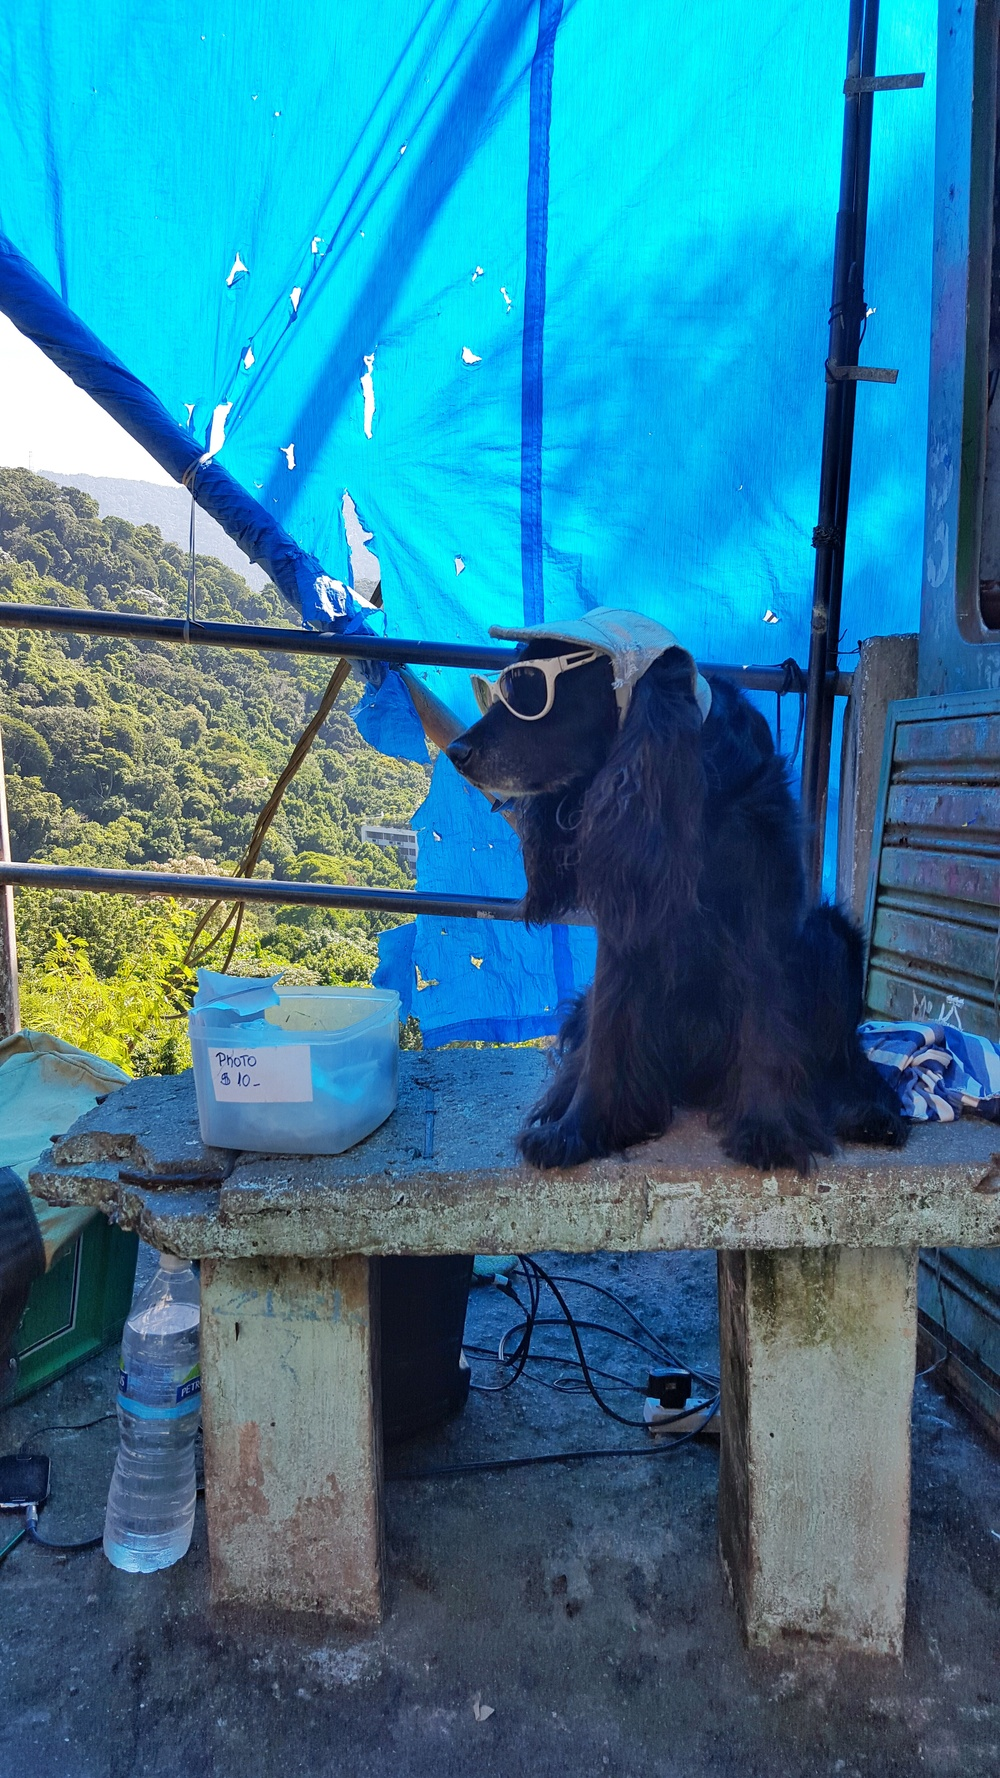 Dog at favela